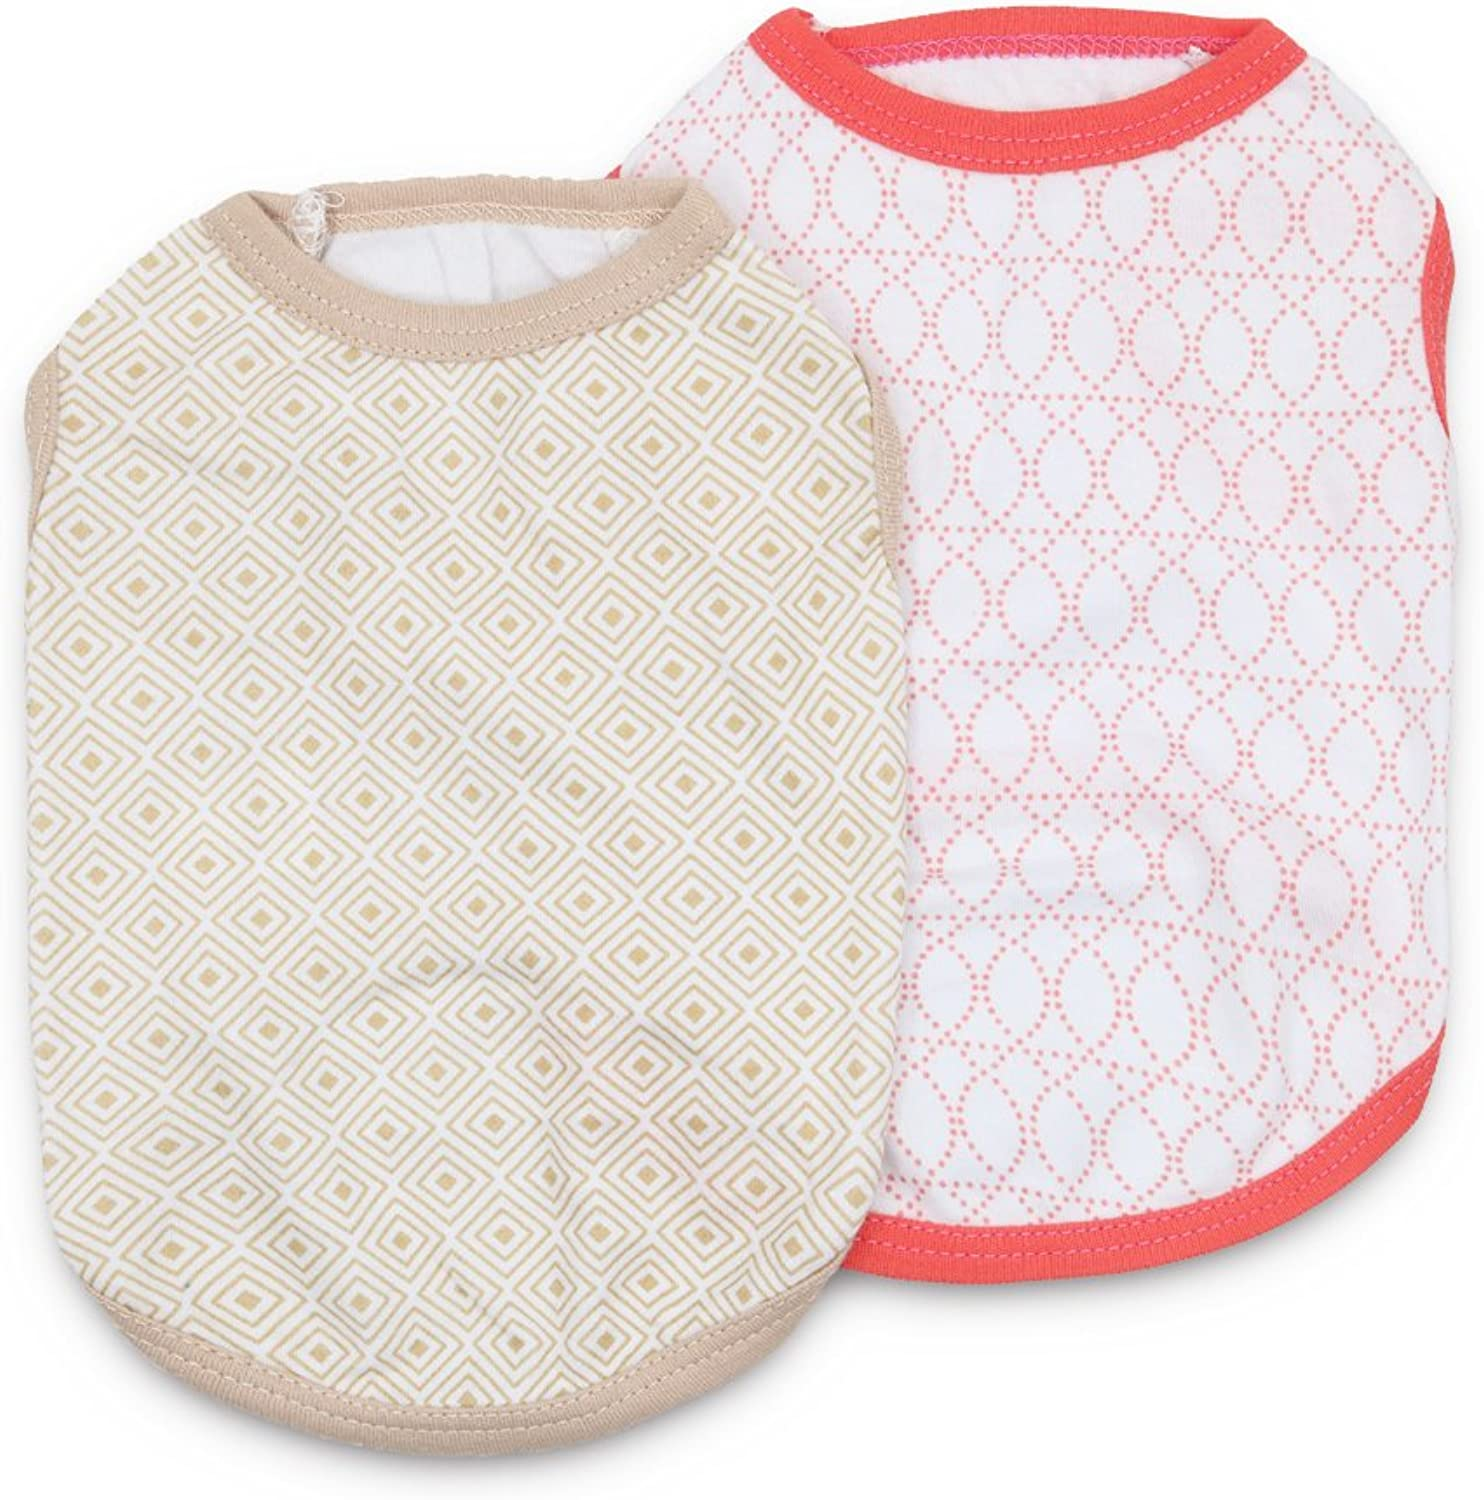 DroolingDog Dog Shirts Cotton Dog Clothes Summer Cat Vest Pet T Shirt for Small Dogs Boy, Small, Pack of 2